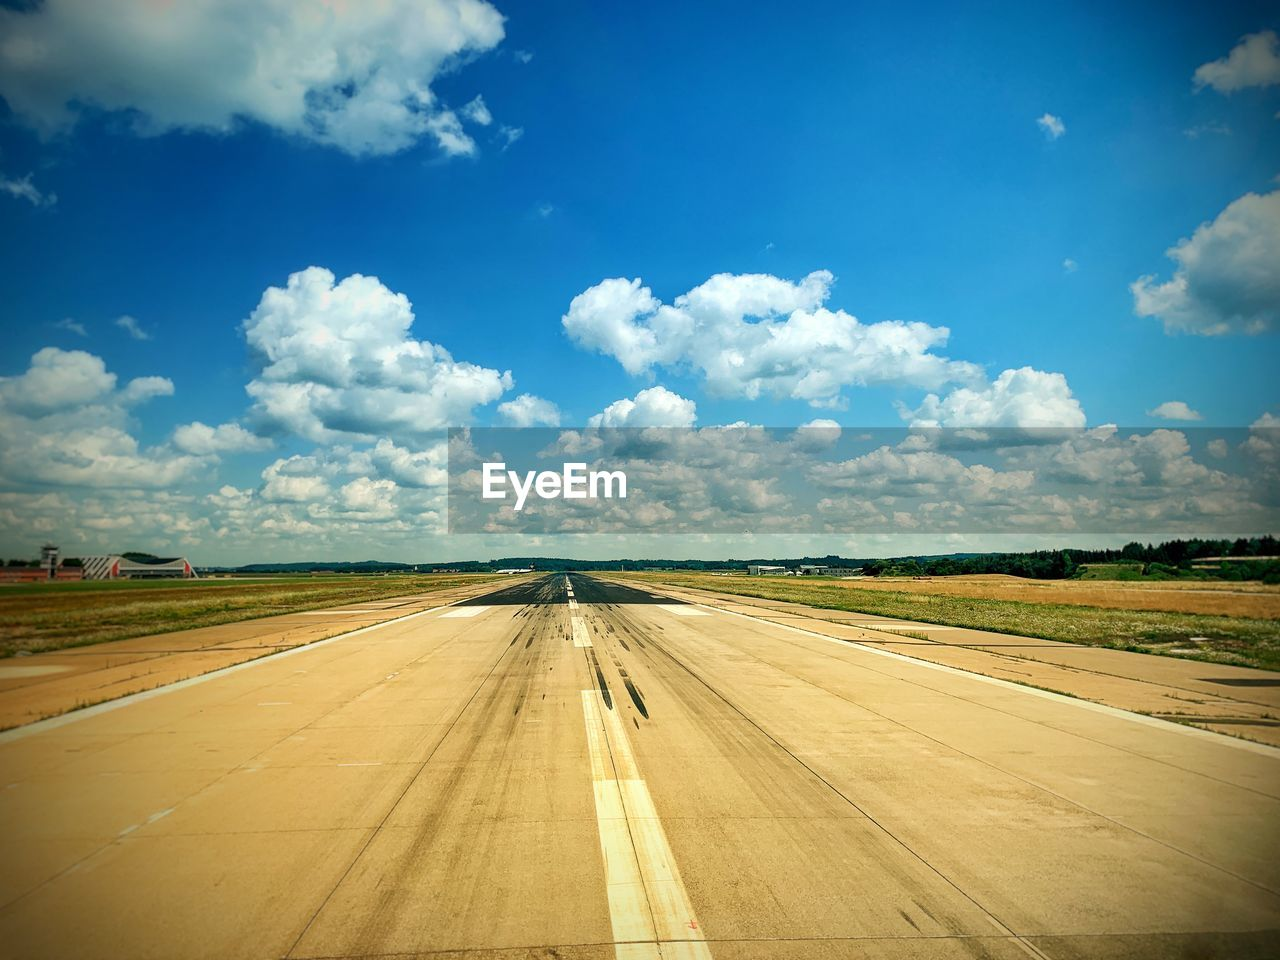 cloud - sky, sky, road, transportation, nature, symbol, day, landscape, direction, no people, environment, sign, marking, airport, the way forward, road marking, diminishing perspective, scenics - nature, airport runway, outdoors, dividing line